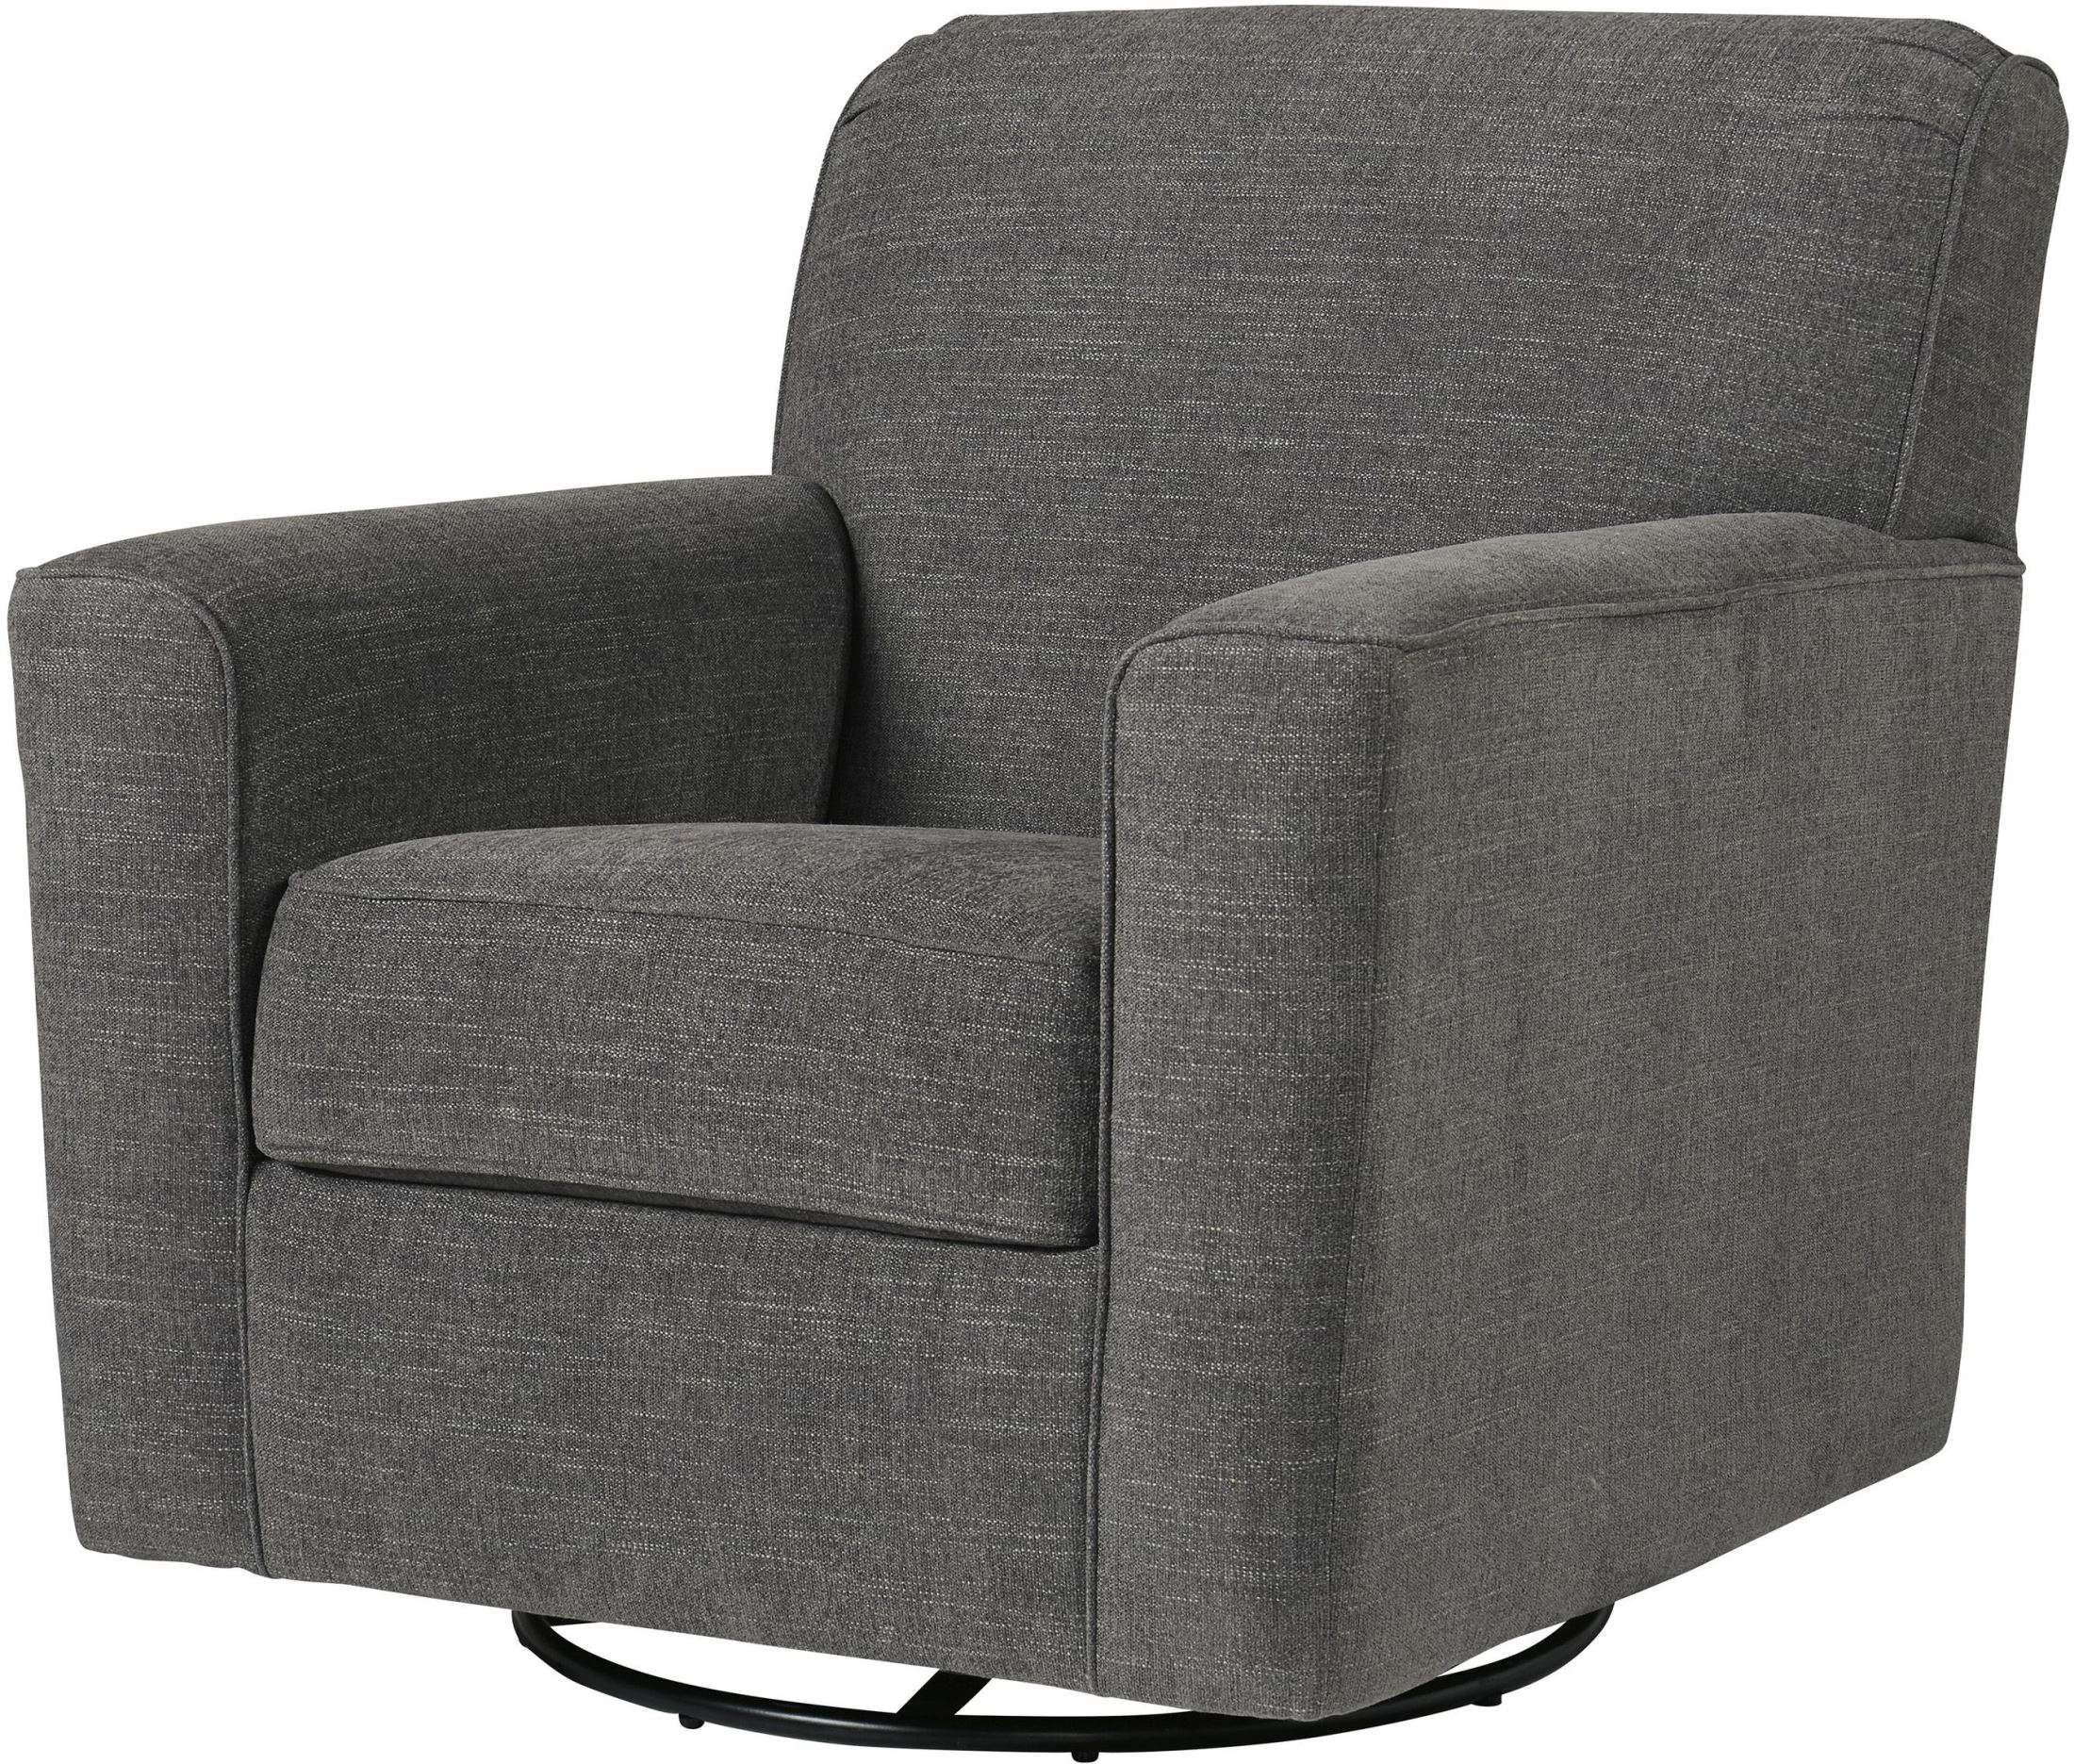 Signature Designashley Alcona Charcoal Swivel Glider Accent Inside Latest Charcoal Swivel Chairs (View 15 of 20)